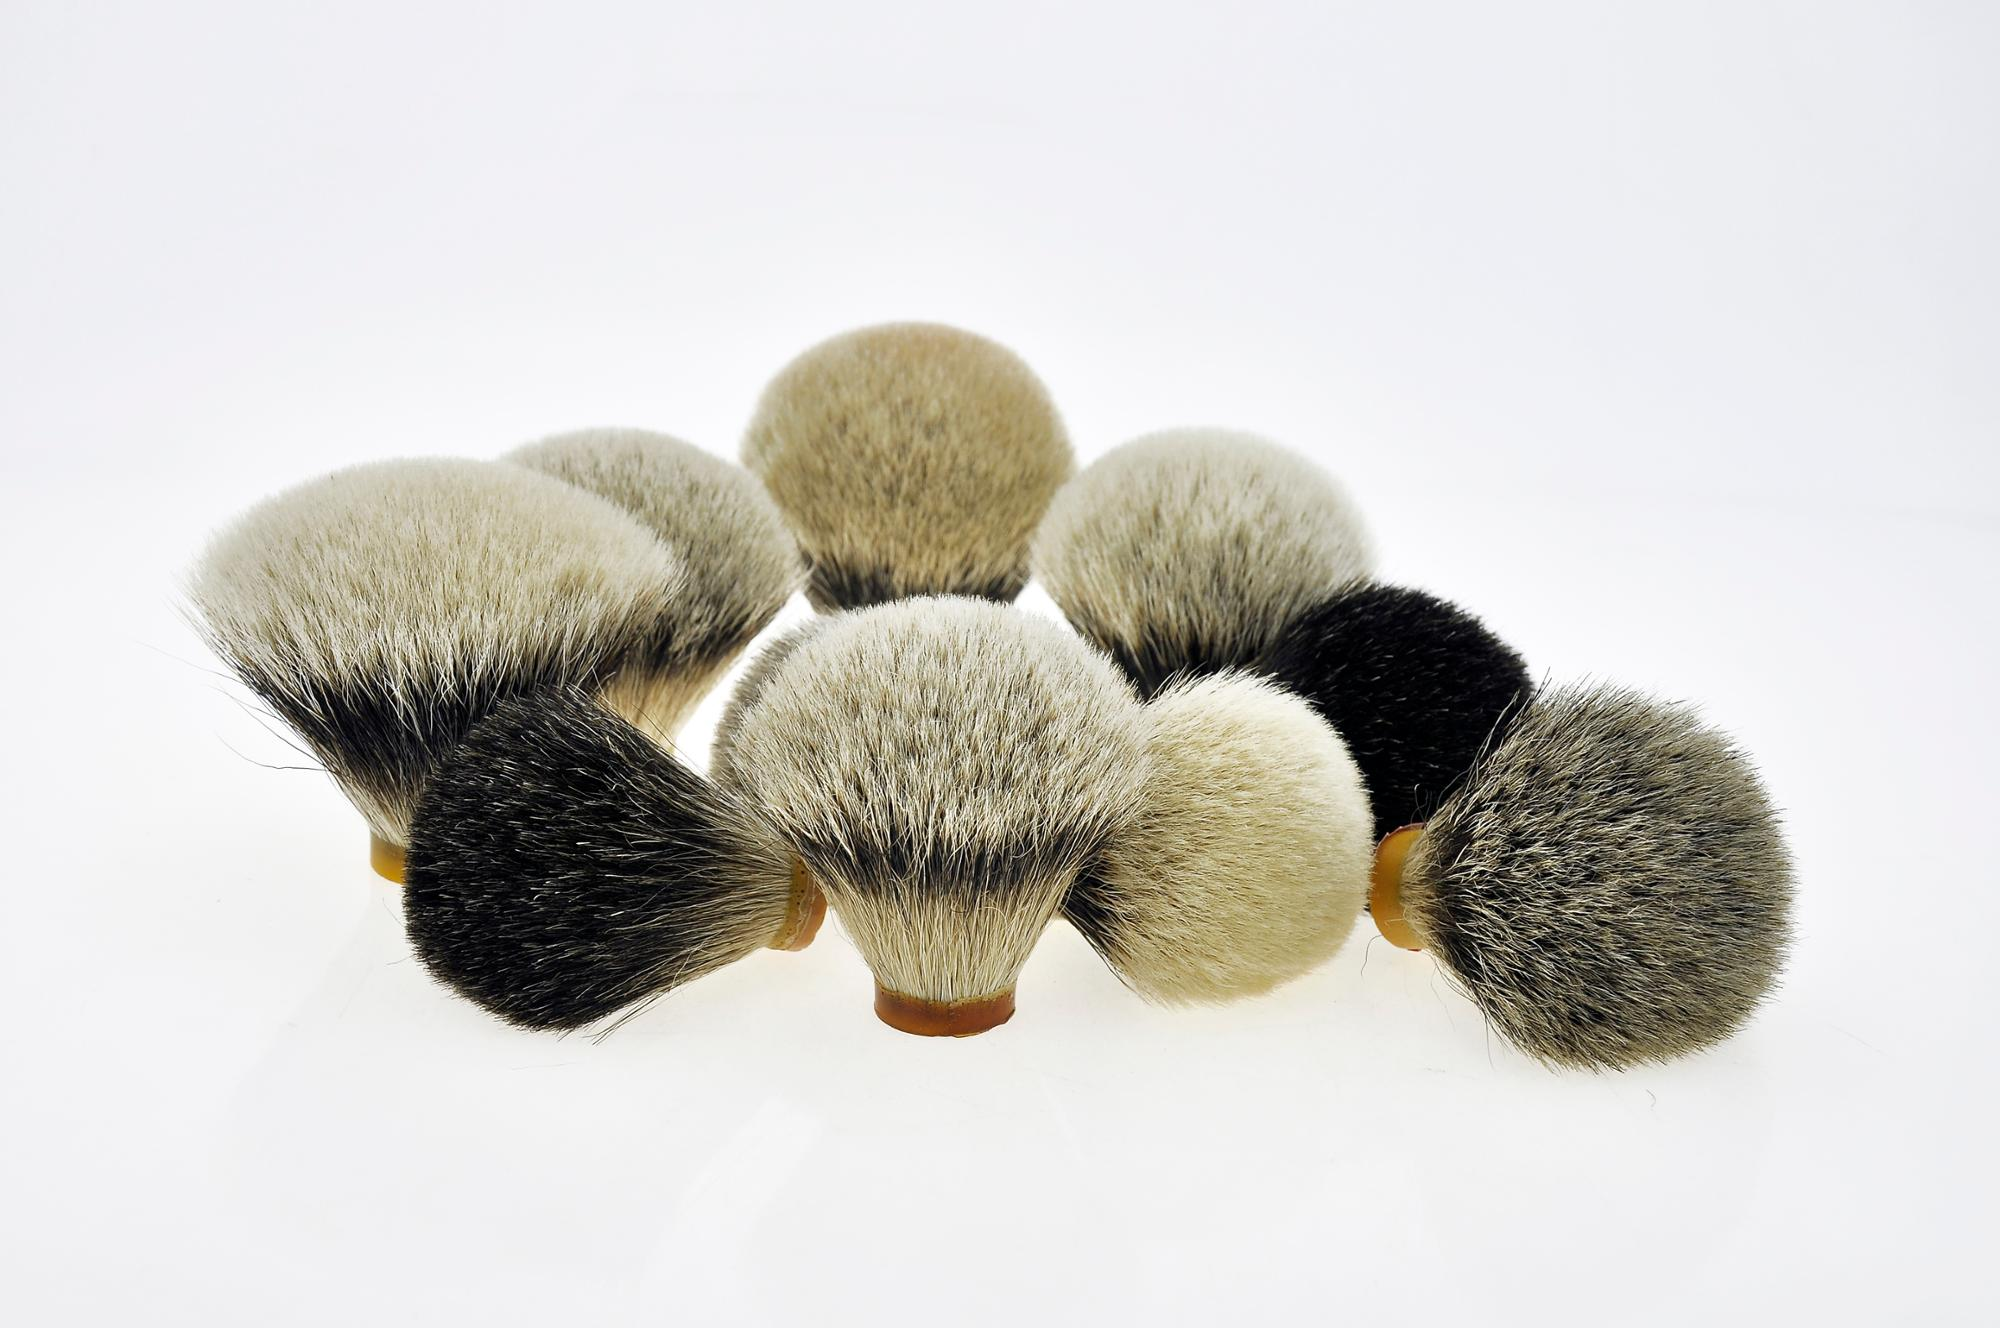 Hand made high quality Badger hair knots size Customized Shaving brush knots